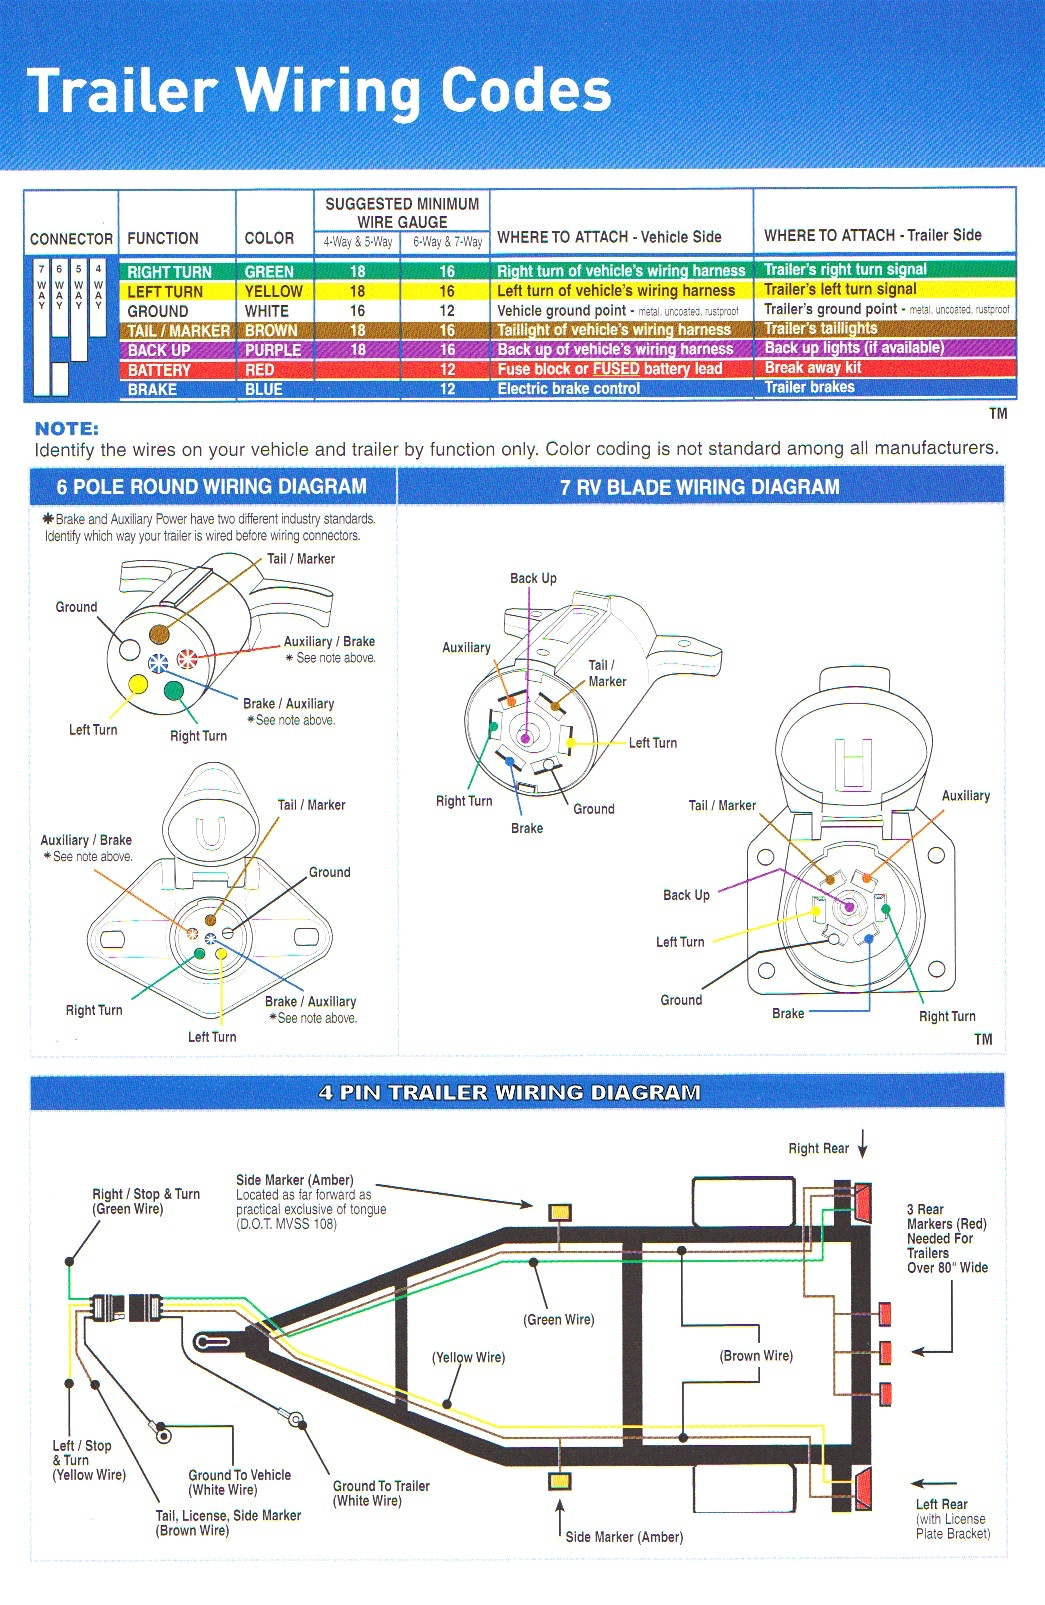 Trailer Connector Wiring Diagram 4 Way - Allove - Trailer Wiring Diagram 4 Way Flat